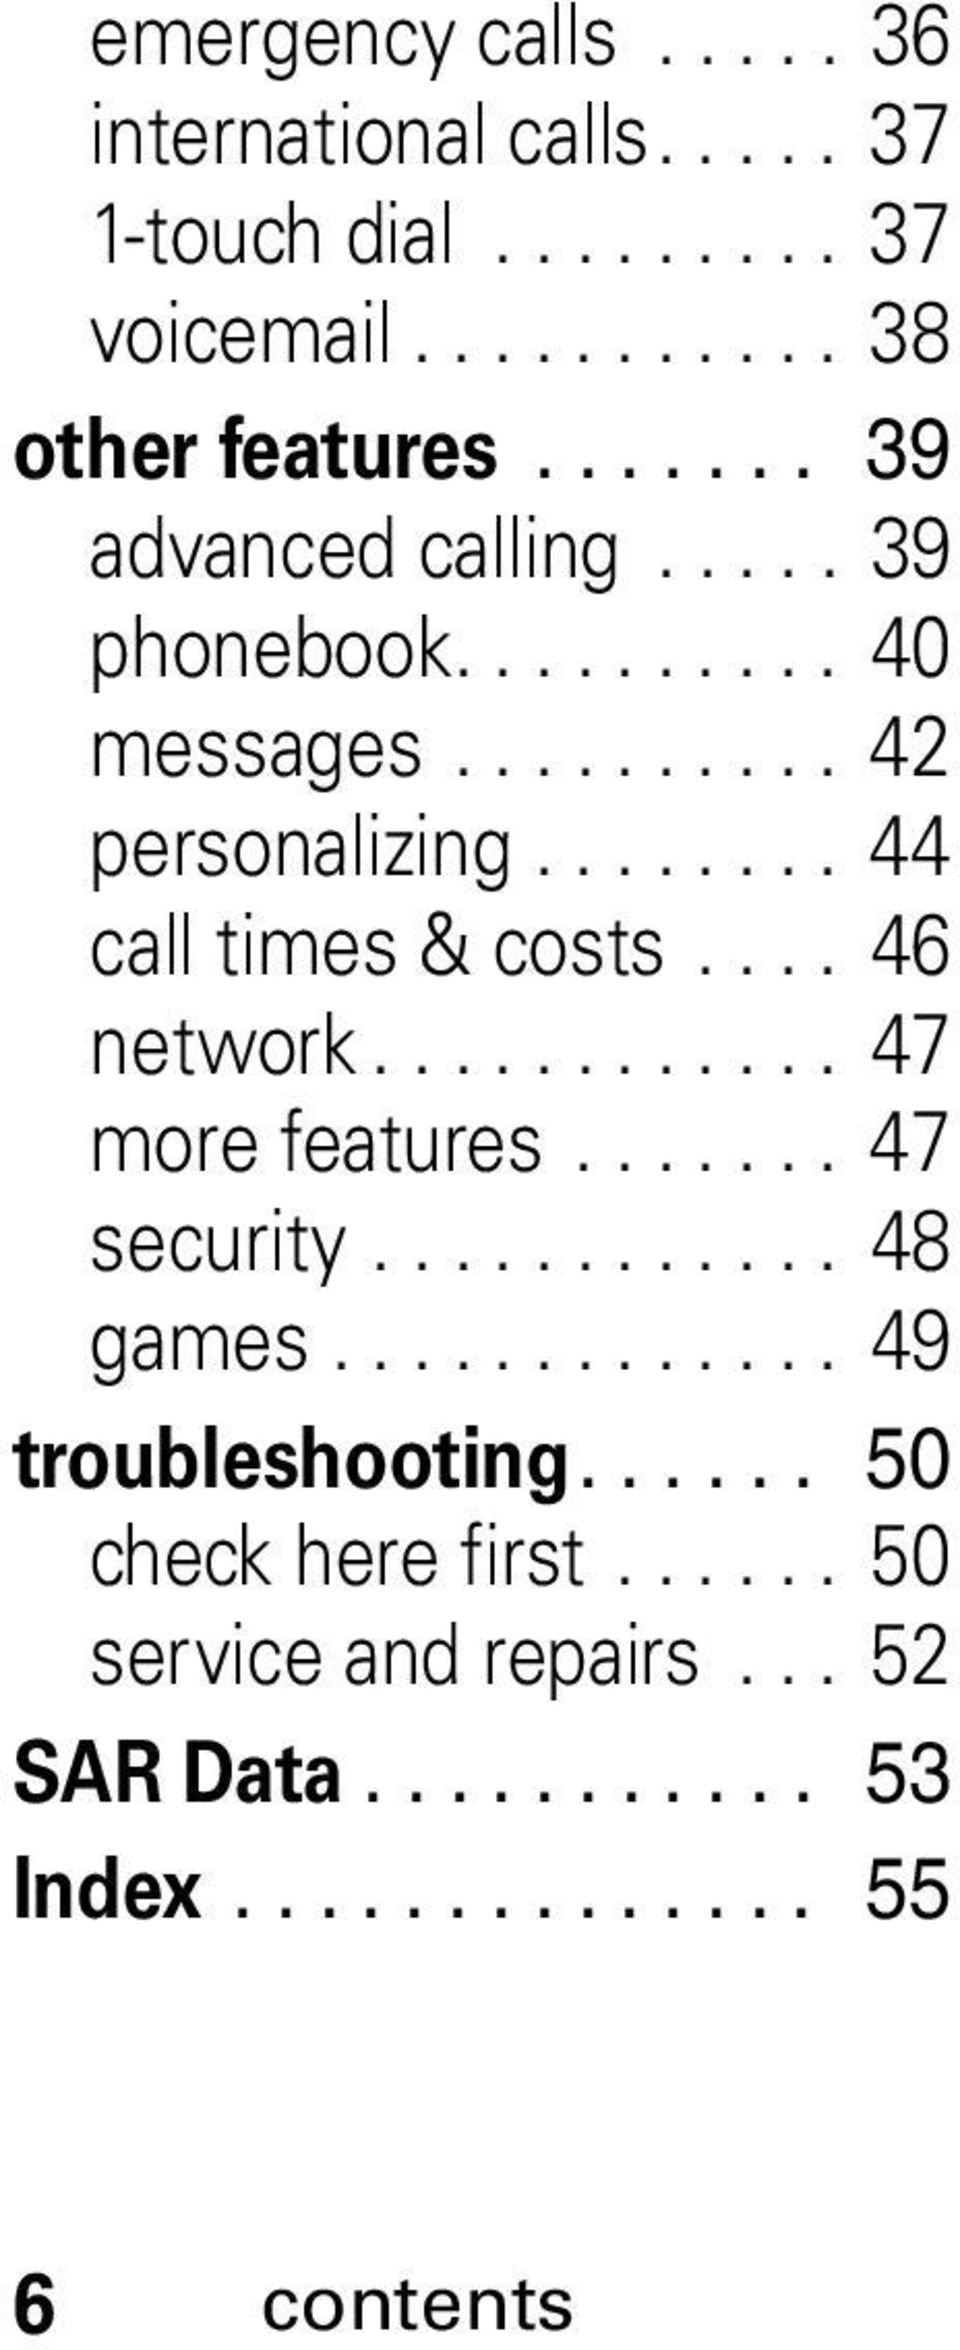 ... 46 network............ 47 more features....... 47 security............ 48 games............. 49 troubleshooting.